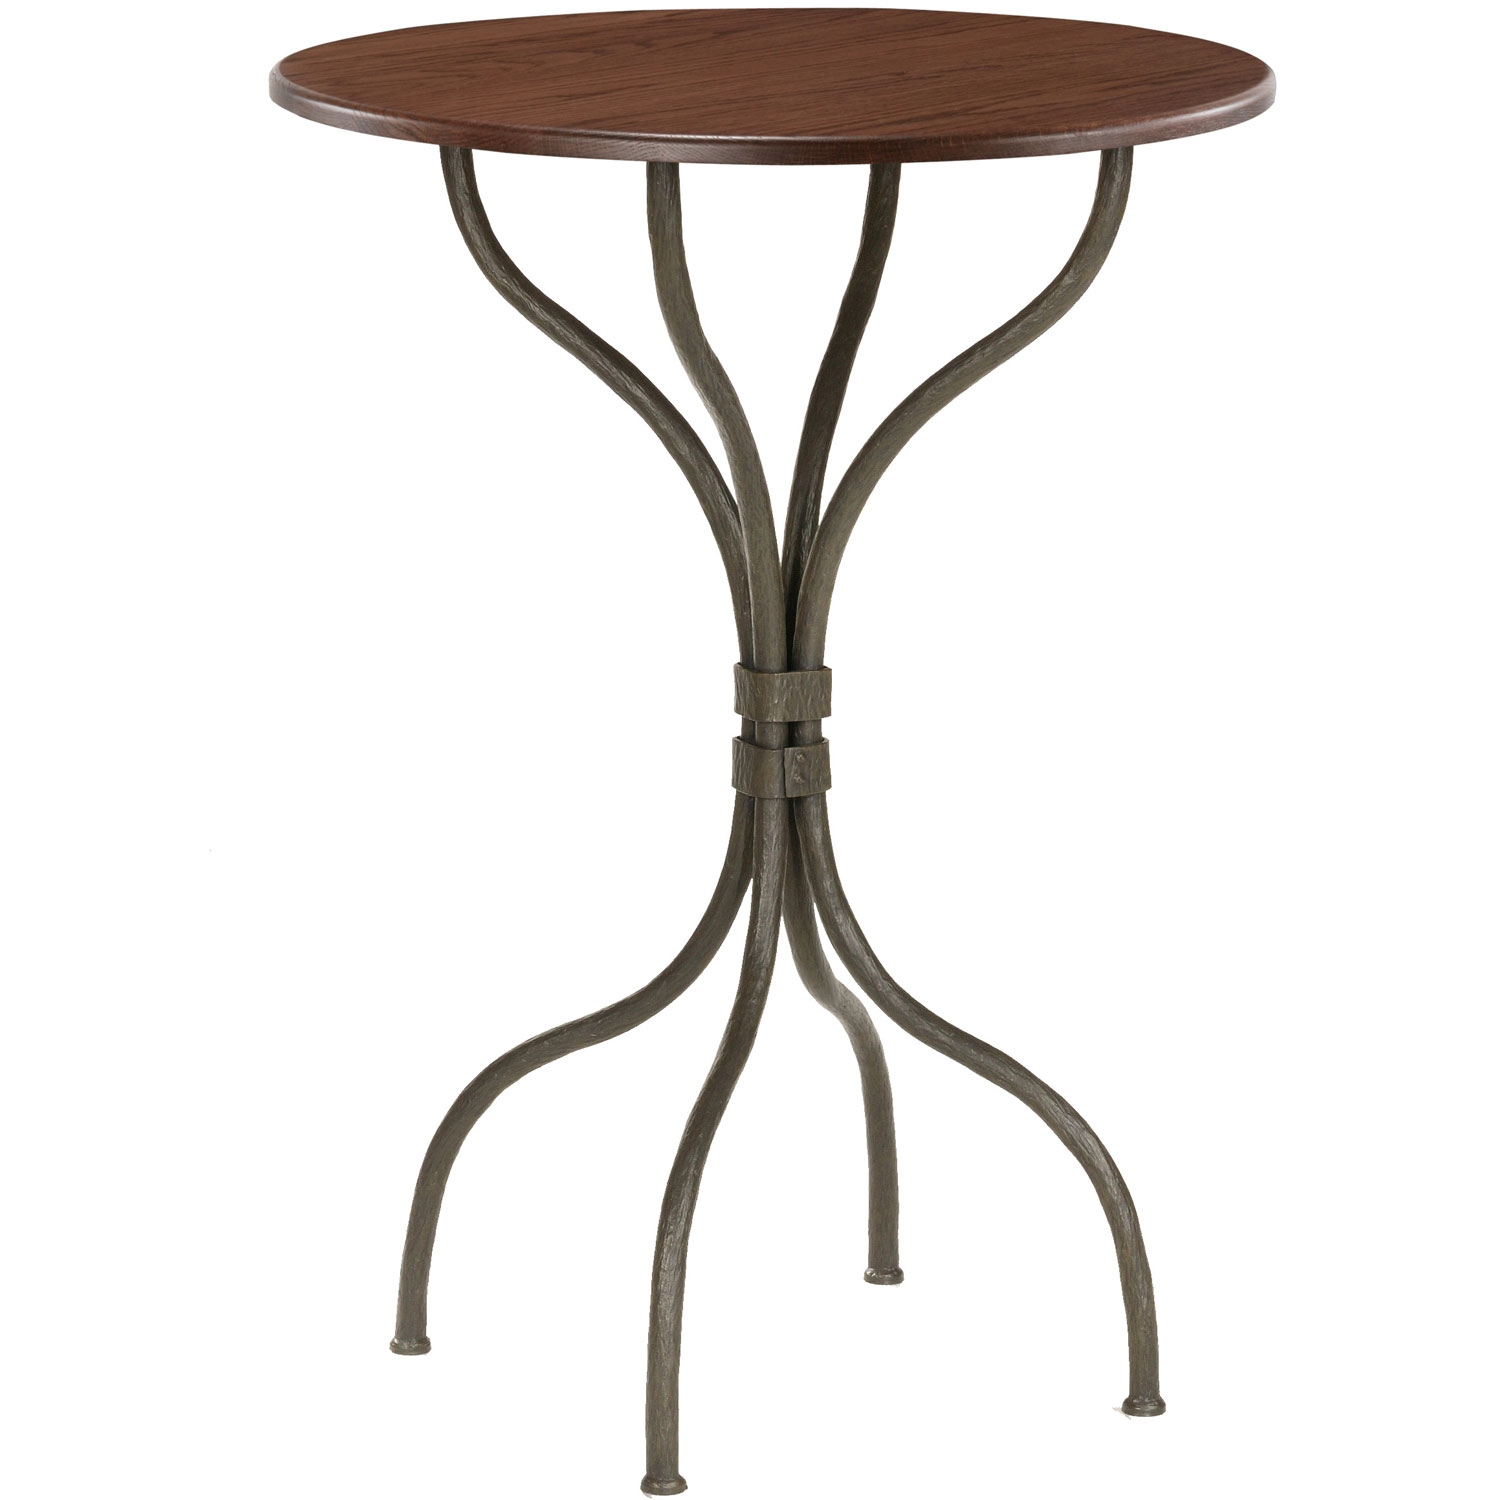 Perfect Pictured Here Is The Cedarvale Bar Height Table With Textured Wrought Iron  Table Base And A